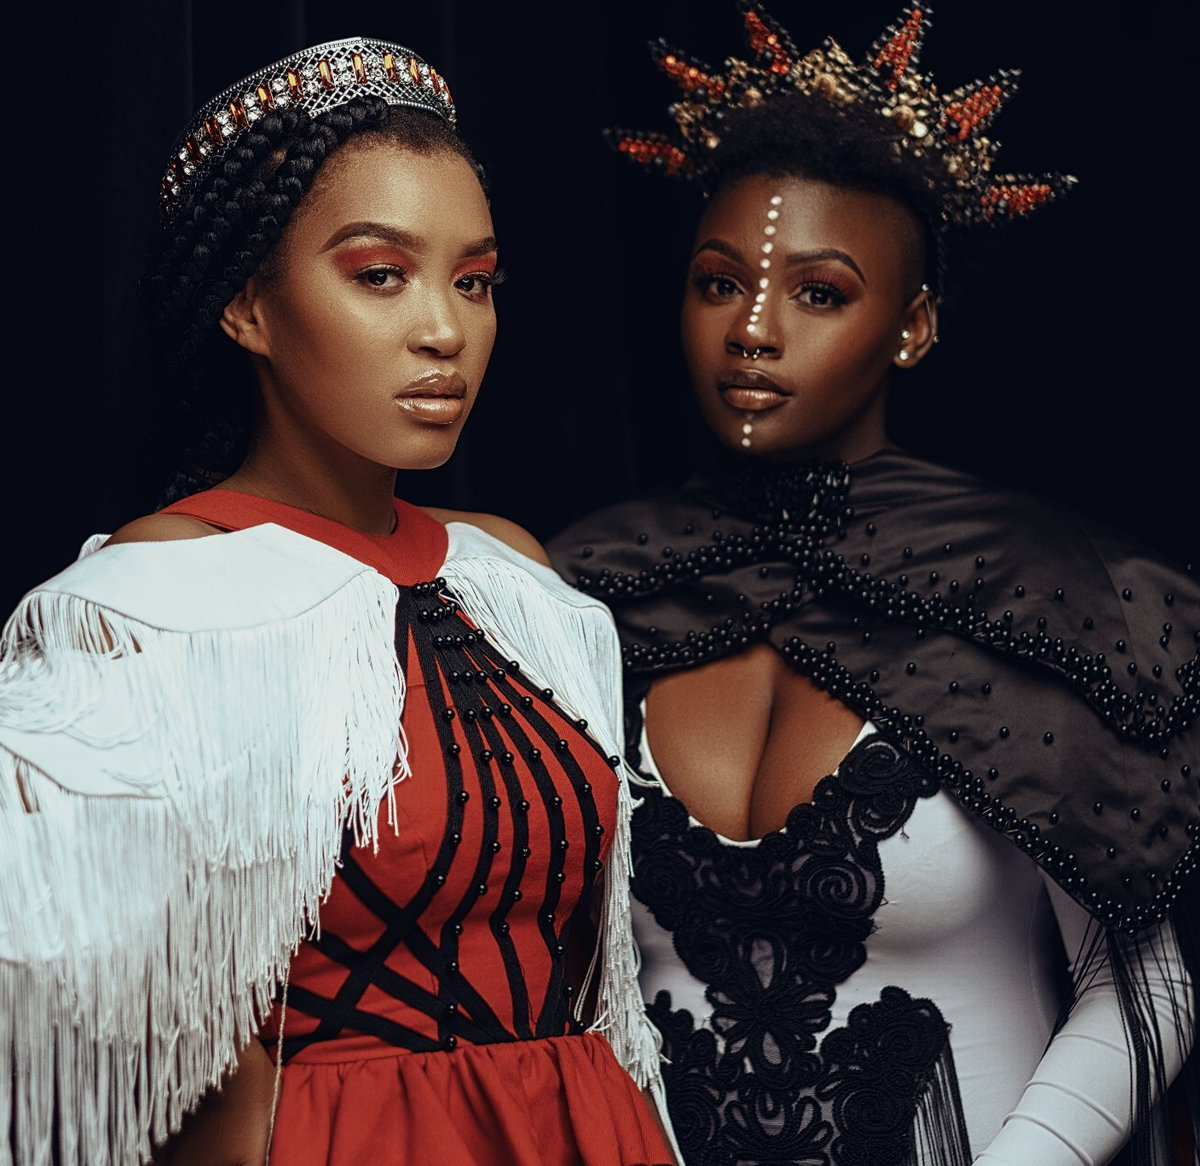 Were loving the shine these amazing women are creating, feeling the love today listening to @BeritaAfroSoul and @AmandaBlacks #Siyamthandana How does this song make you feel?